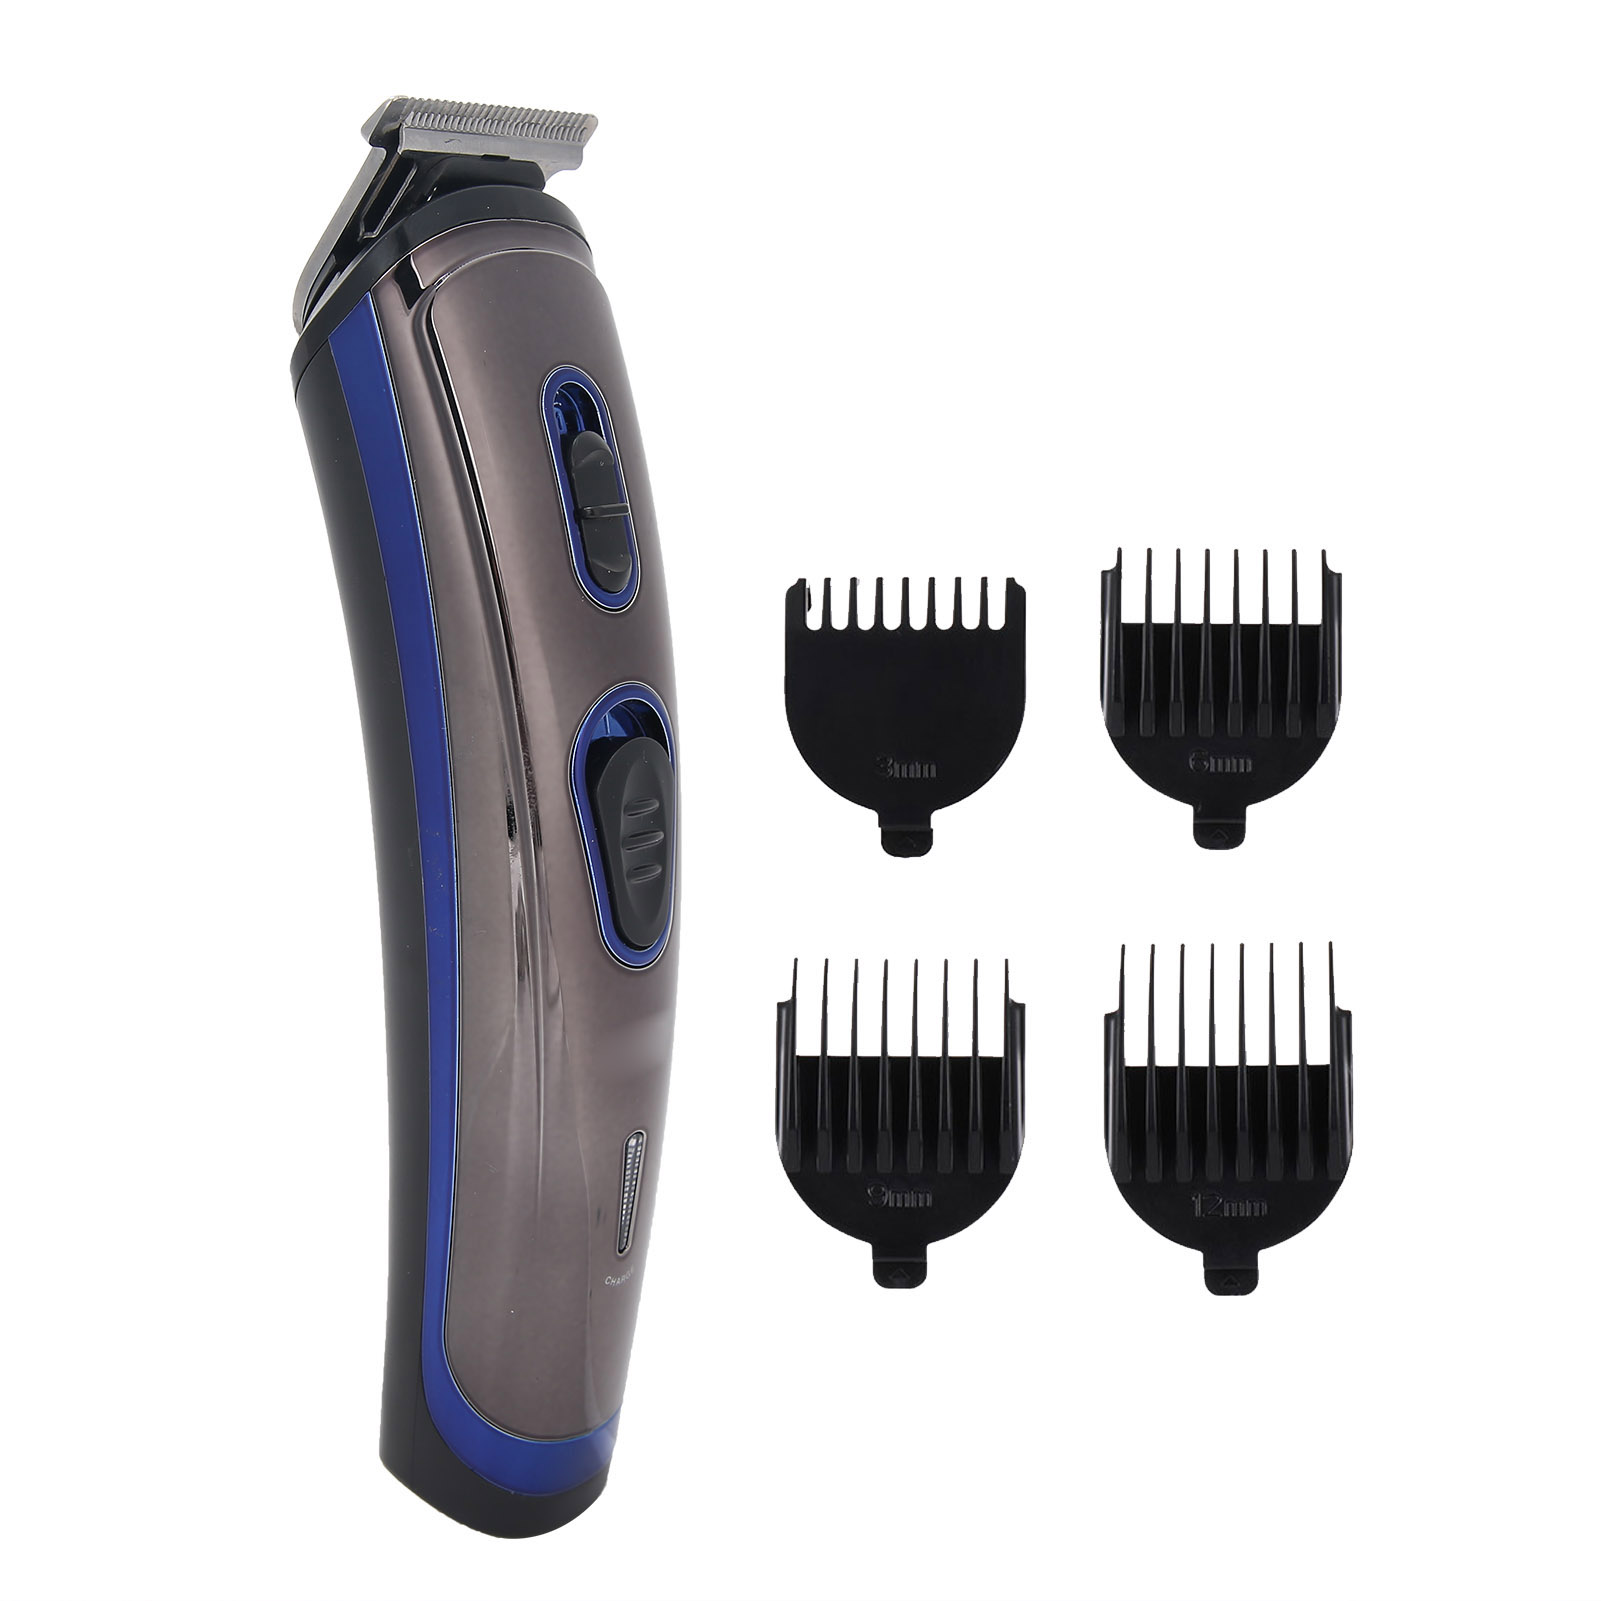 Indexbild 23 - Head Hair Eyebrow Trimmer Electric Shaver USB Rechargeable Clipper For Adult kid